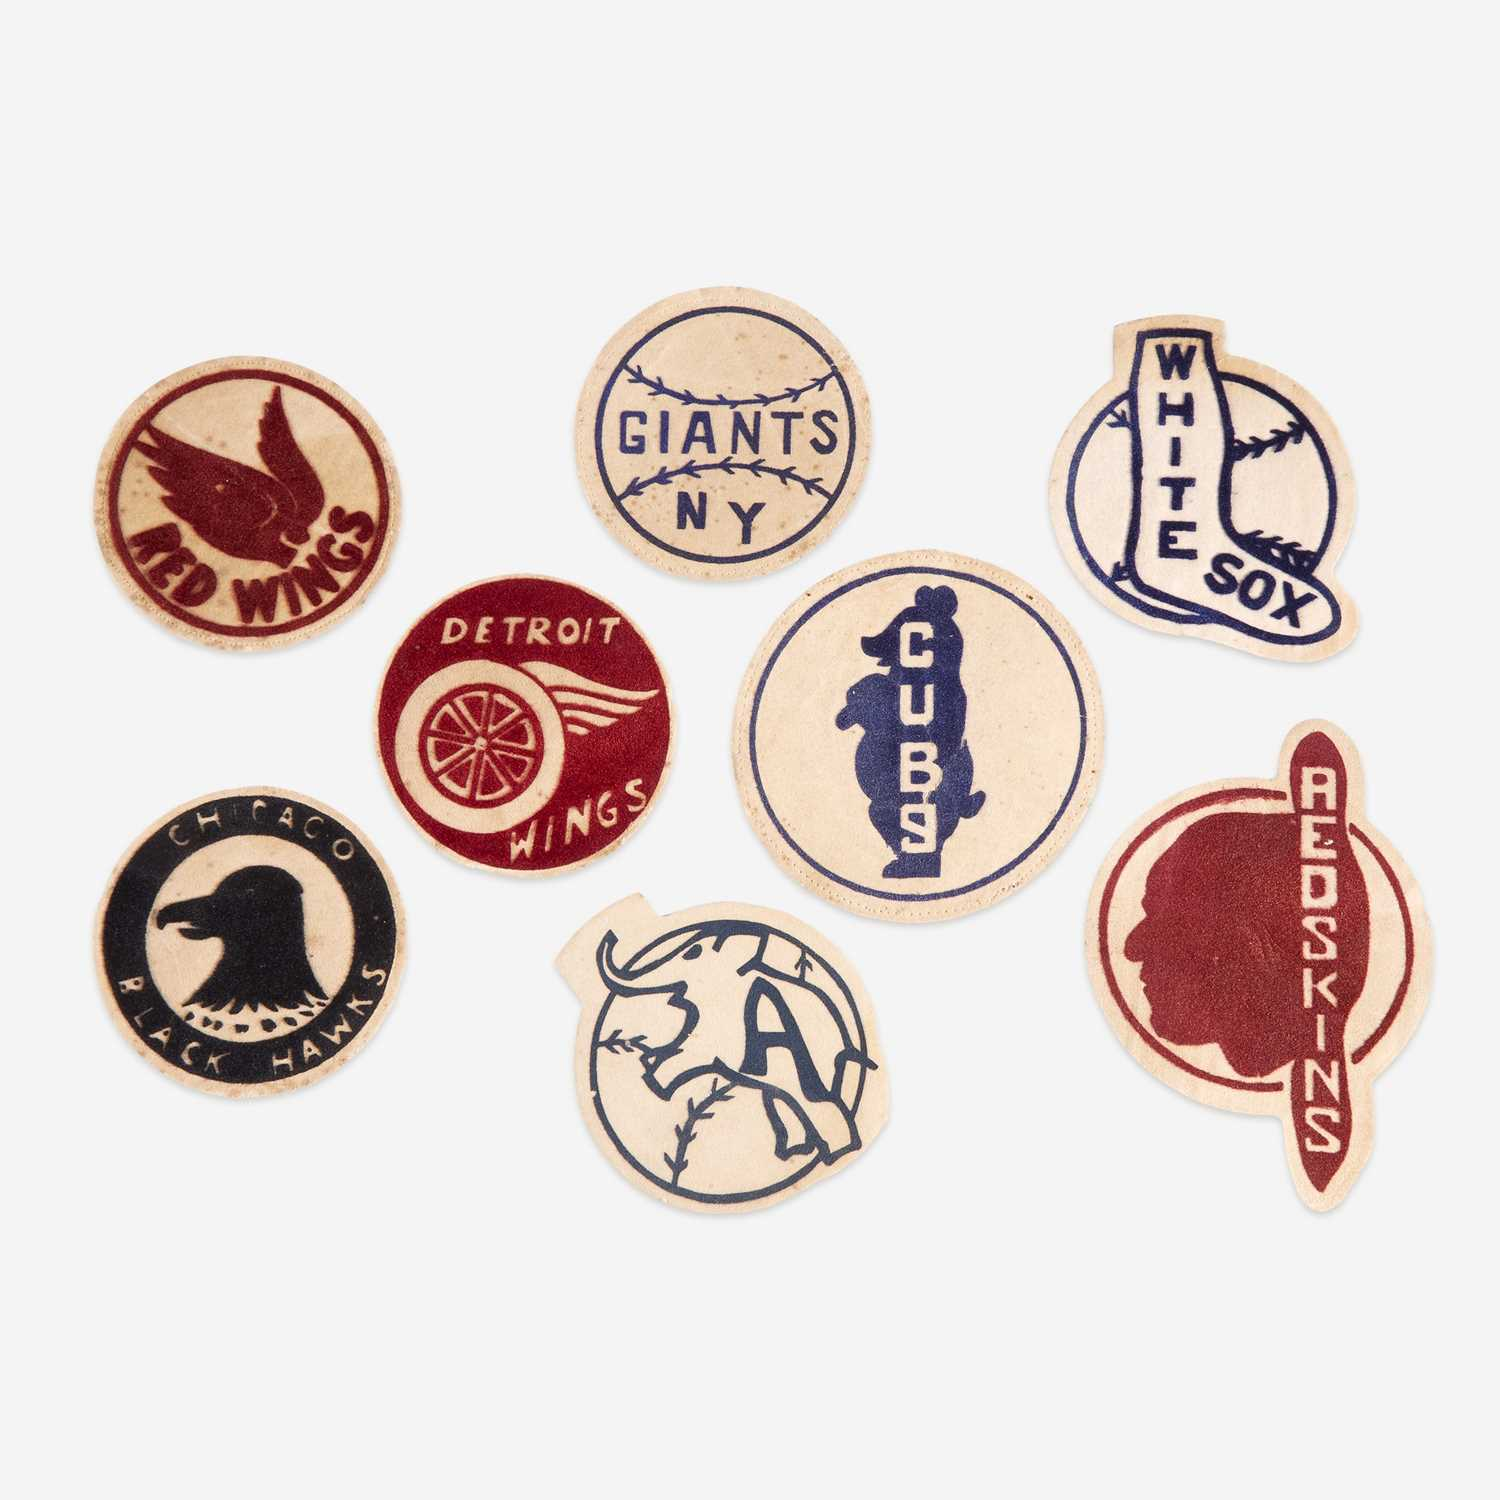 Lot 233 - Eight flocked warming jacket patches for baseball, football, and hockey